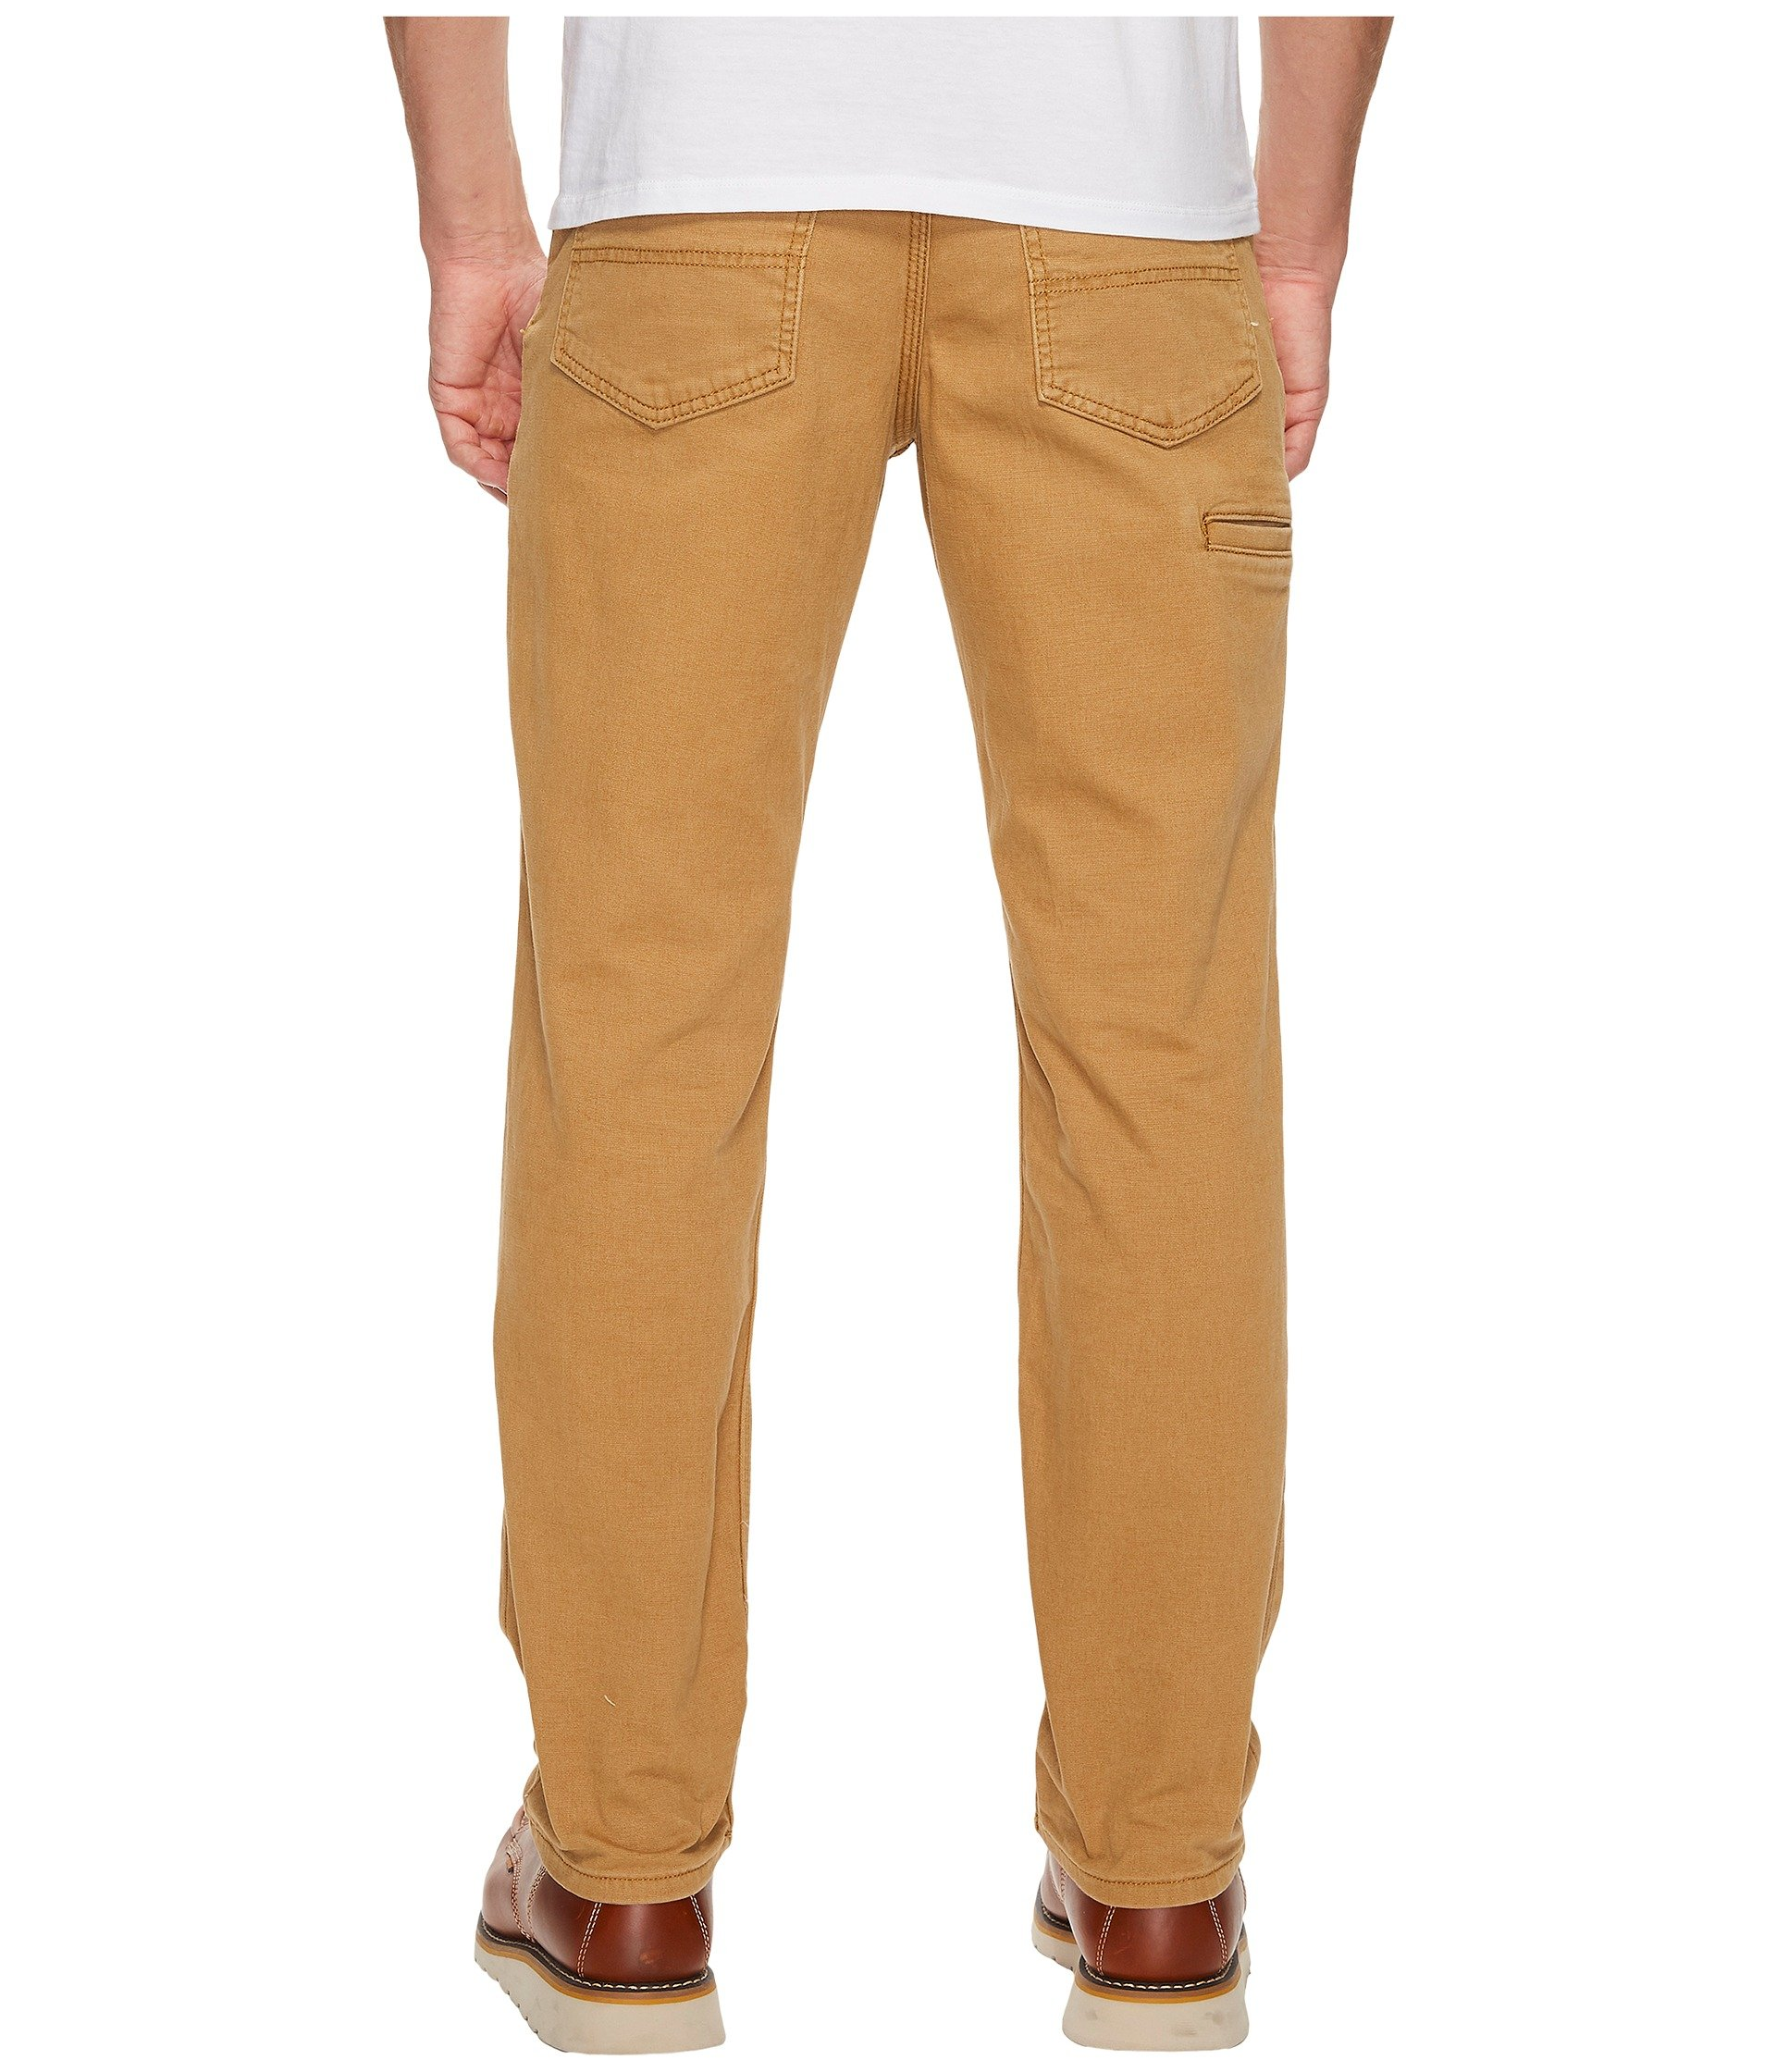 Pants Relaxed Carhartt Fit Hickory pocket Five PwxxqWEIa1